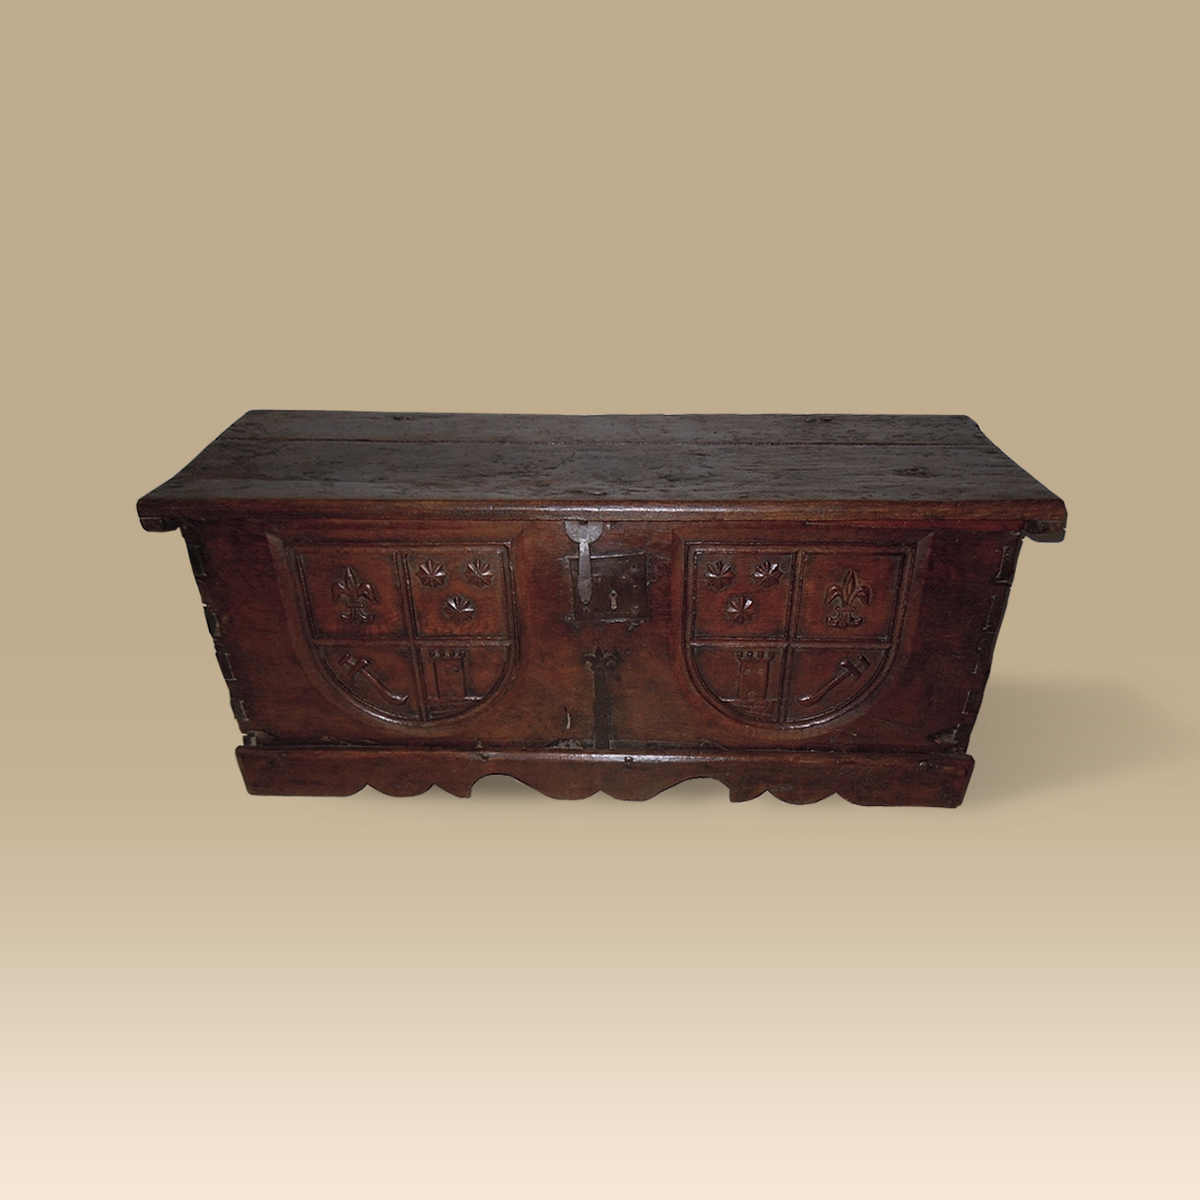 A 16th Century Oak Chest